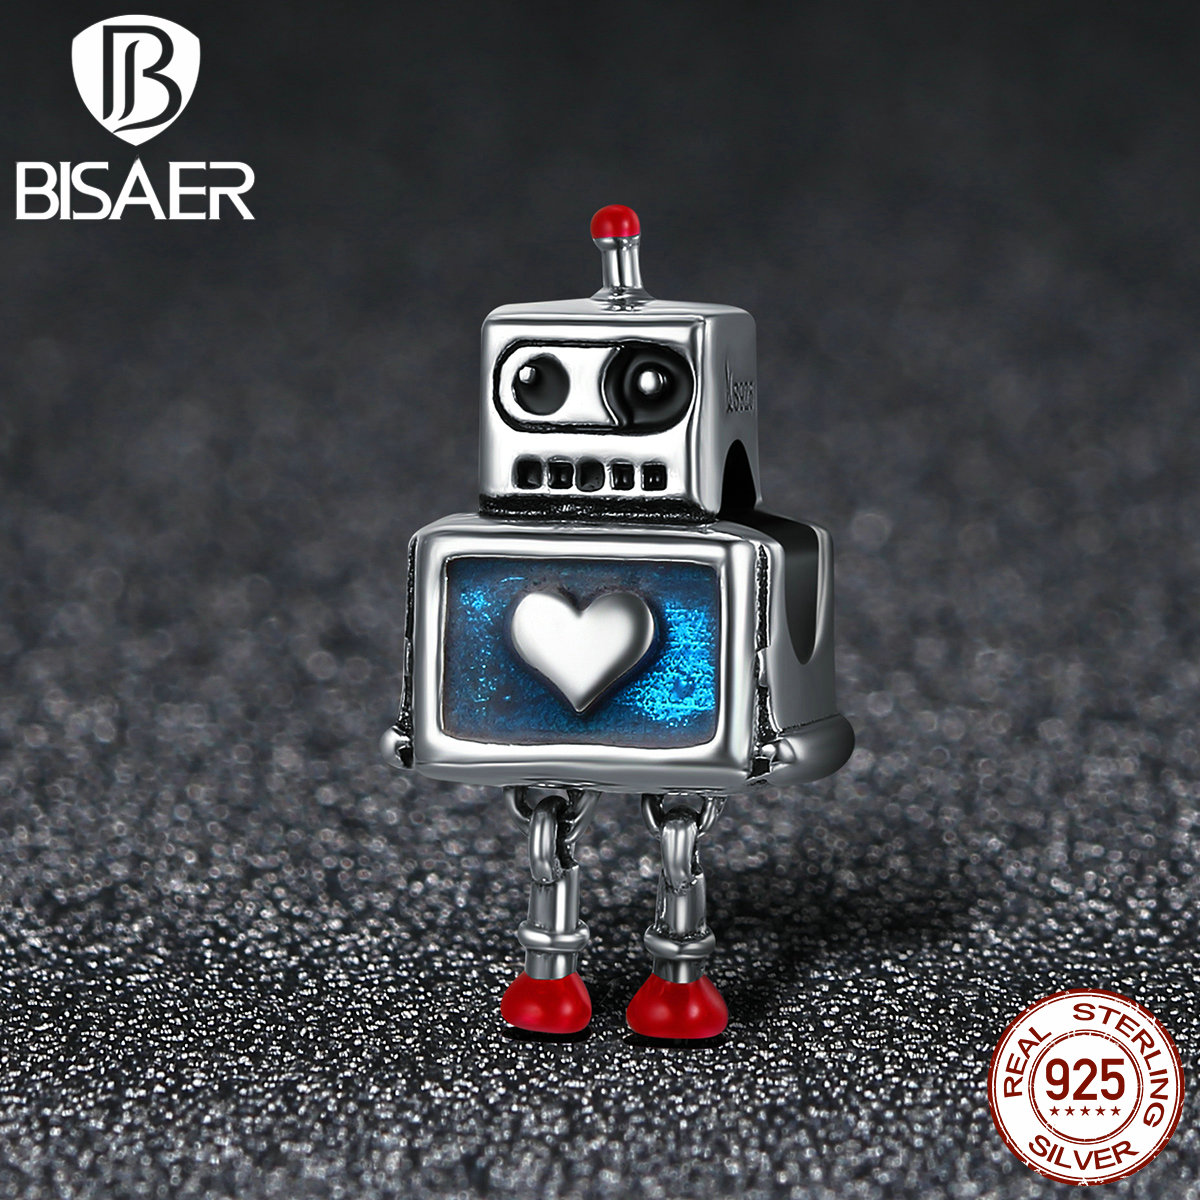 11.11 BISAER 925 Sterling Silver Cute Love Heart Robot, Let Me Help You Beads Fit Charms Bracelet 925 Silver Original Jewelry цена 2017